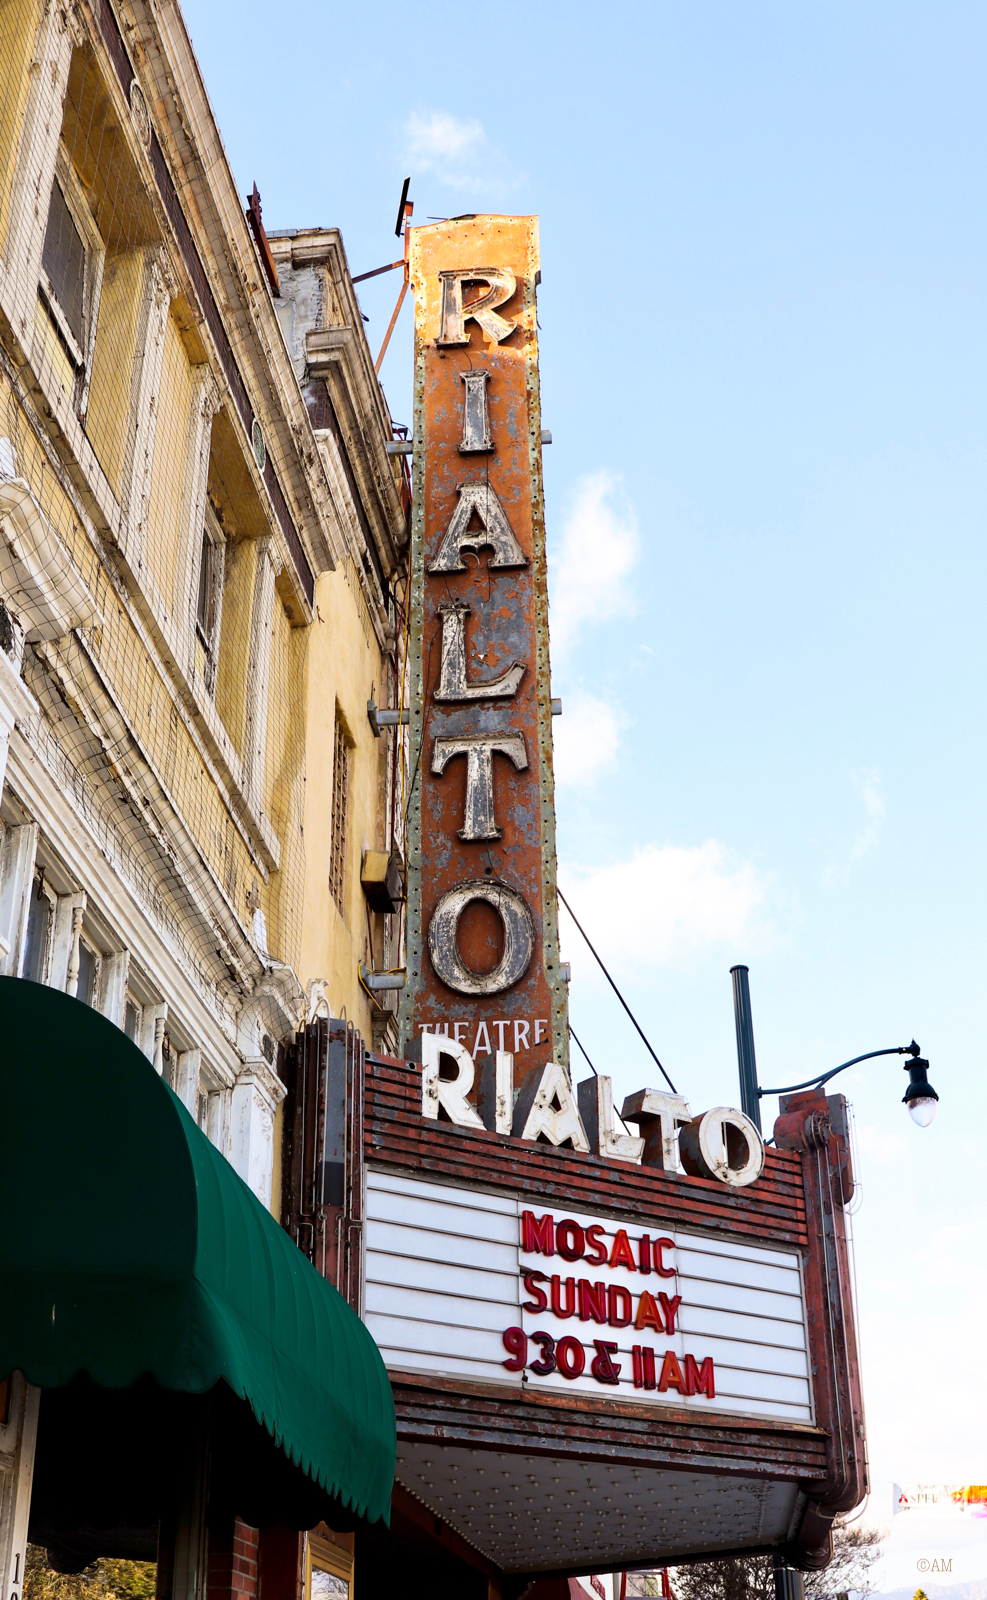 The Rialto Theatre